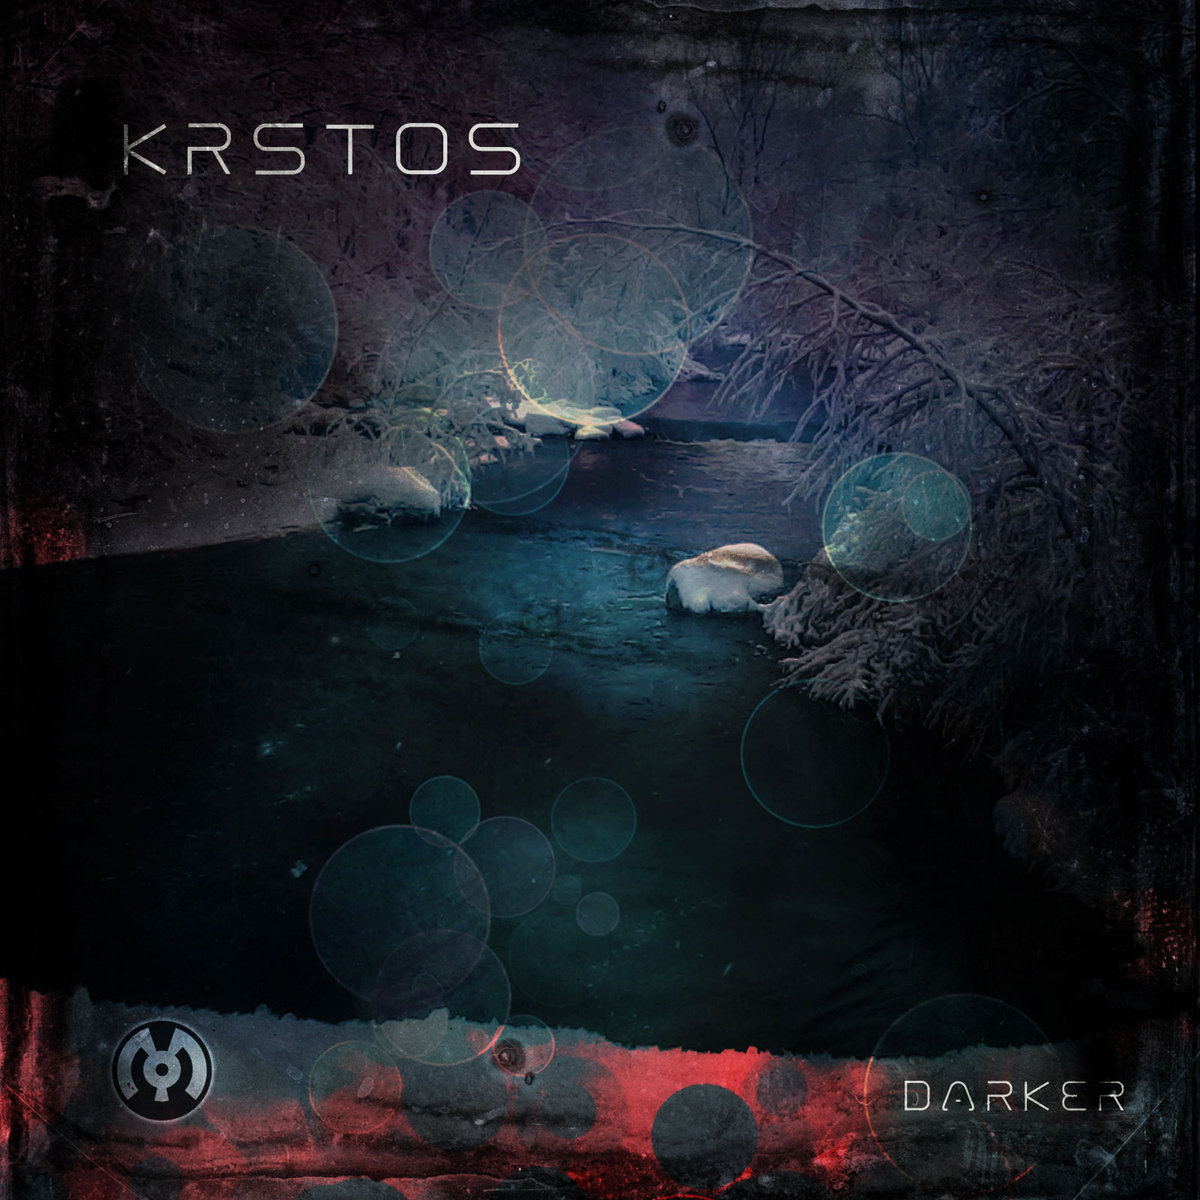 KRSTOS - Trip Crackin @ 'Darker' album (electronic, dubstep)